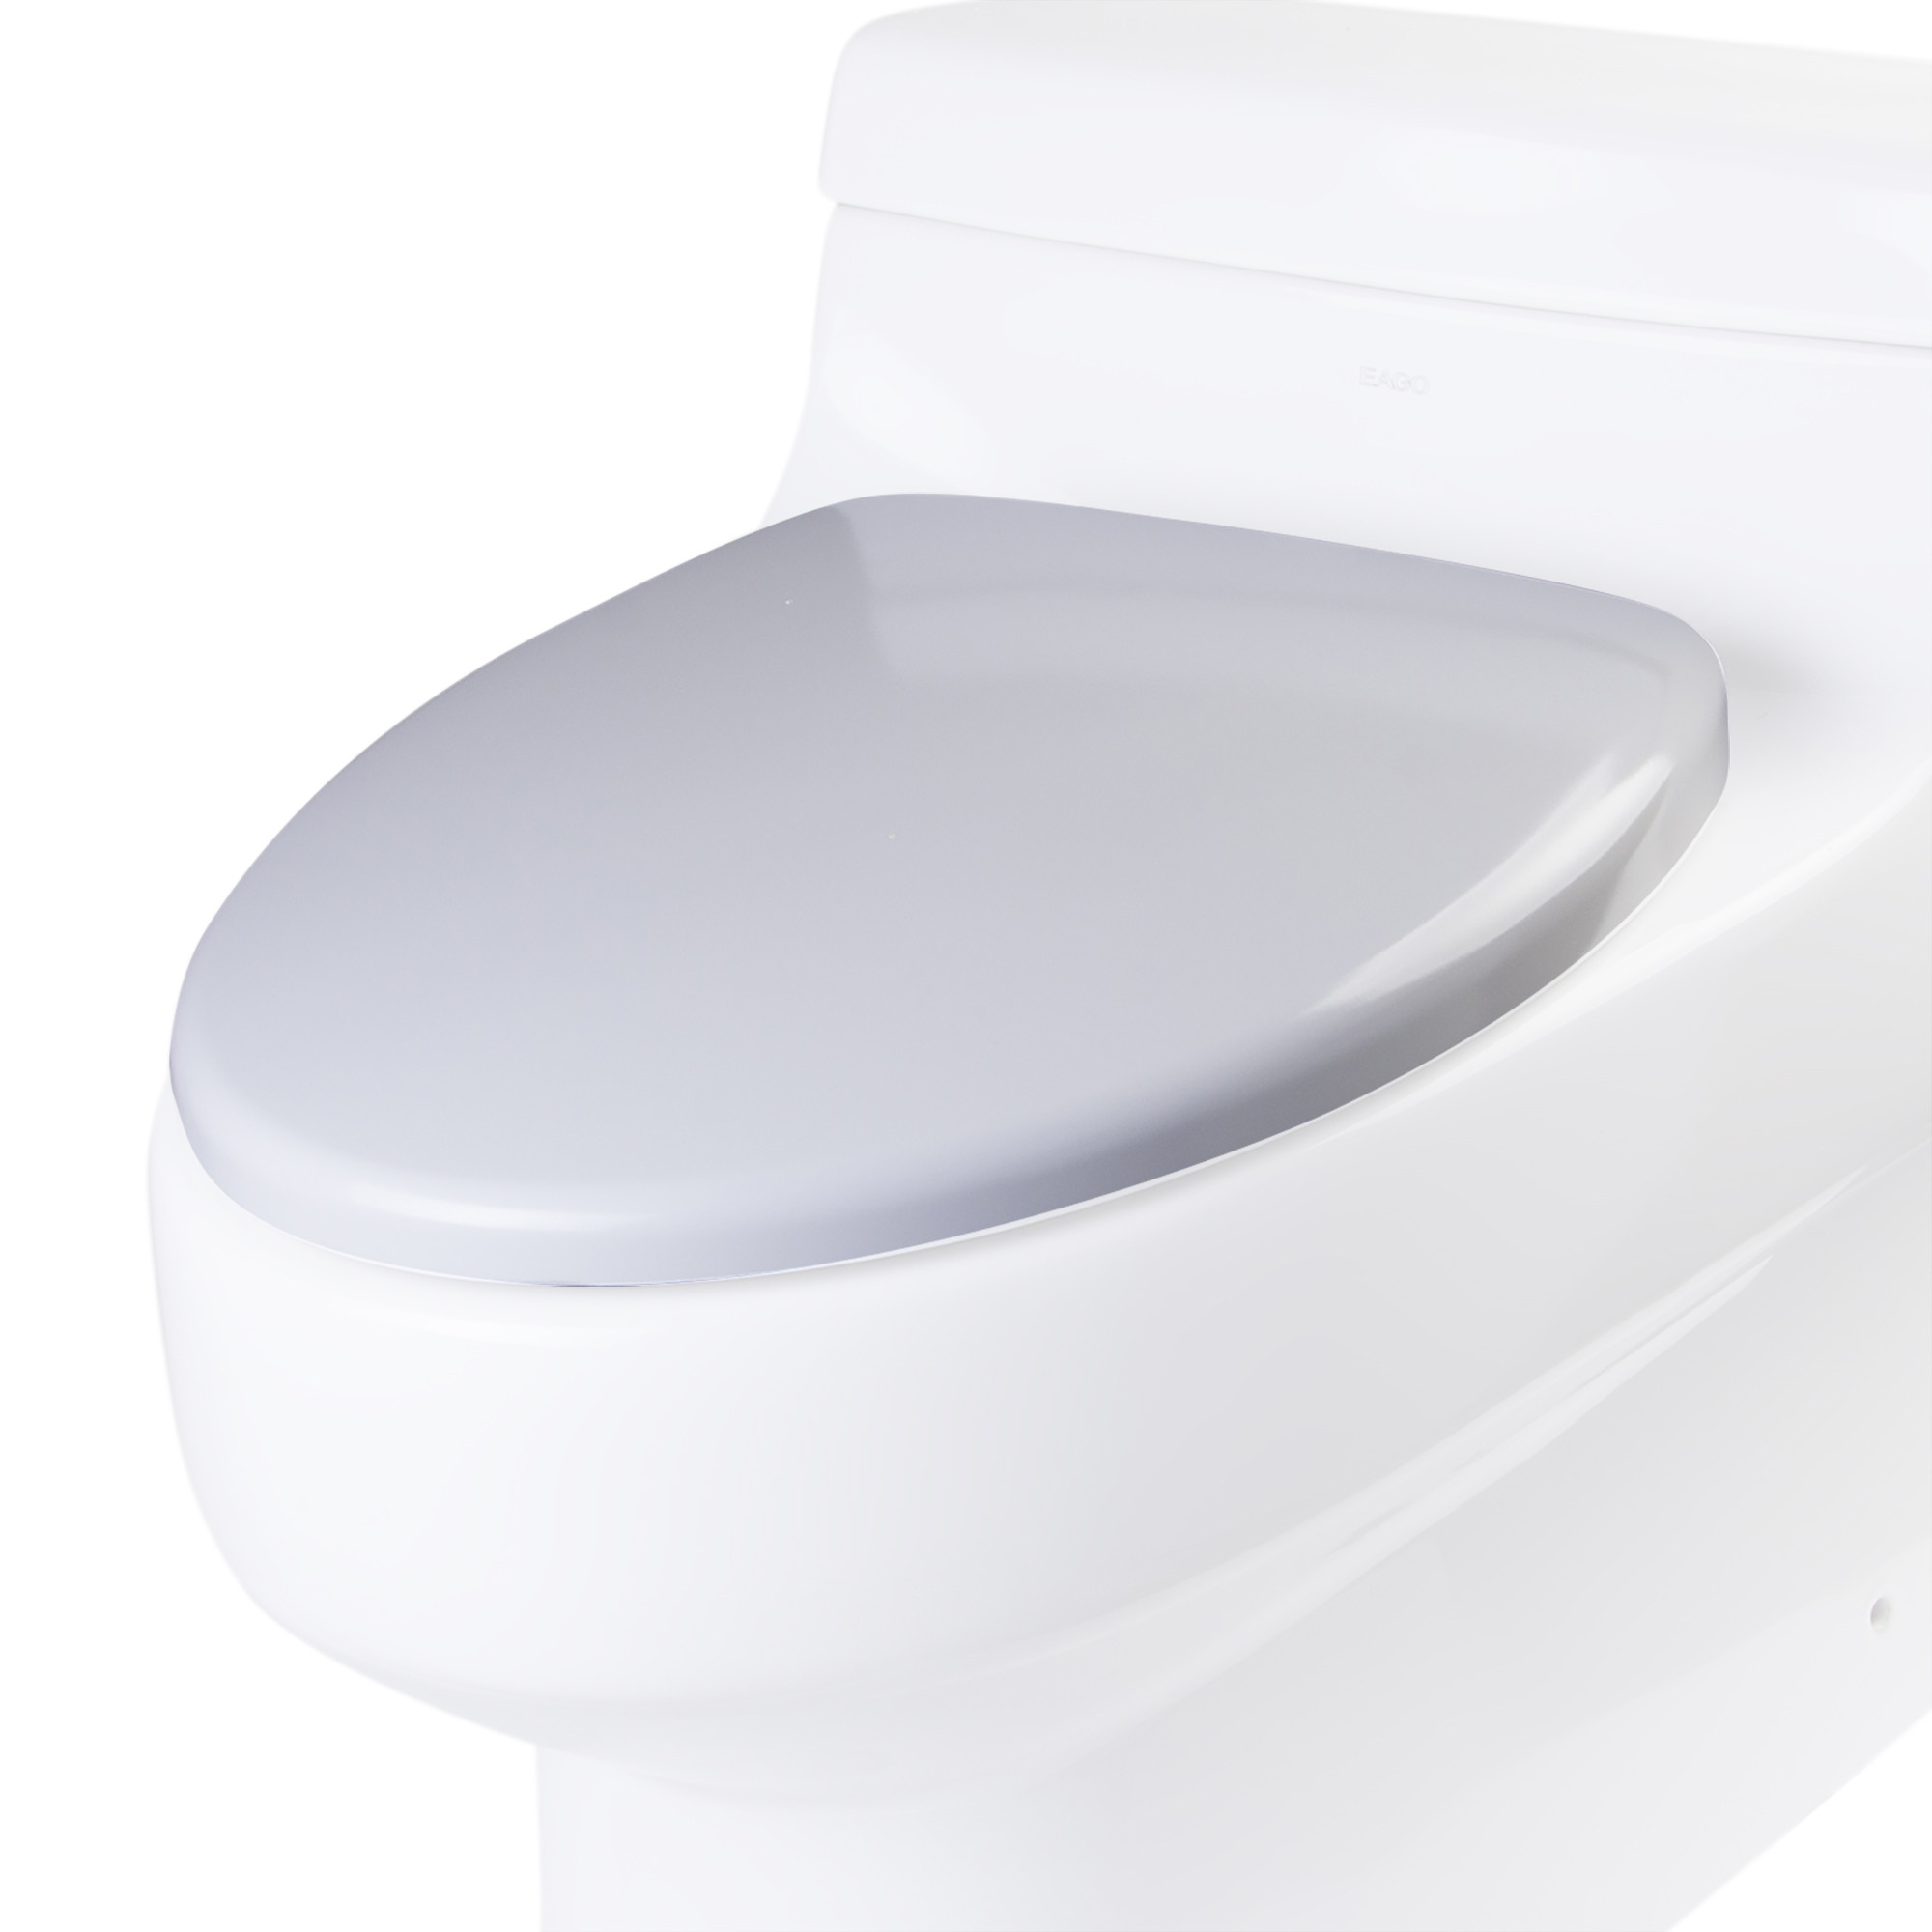 EAGO R-352SEAT Replacement Soft Closing Toilet Seat for TB352